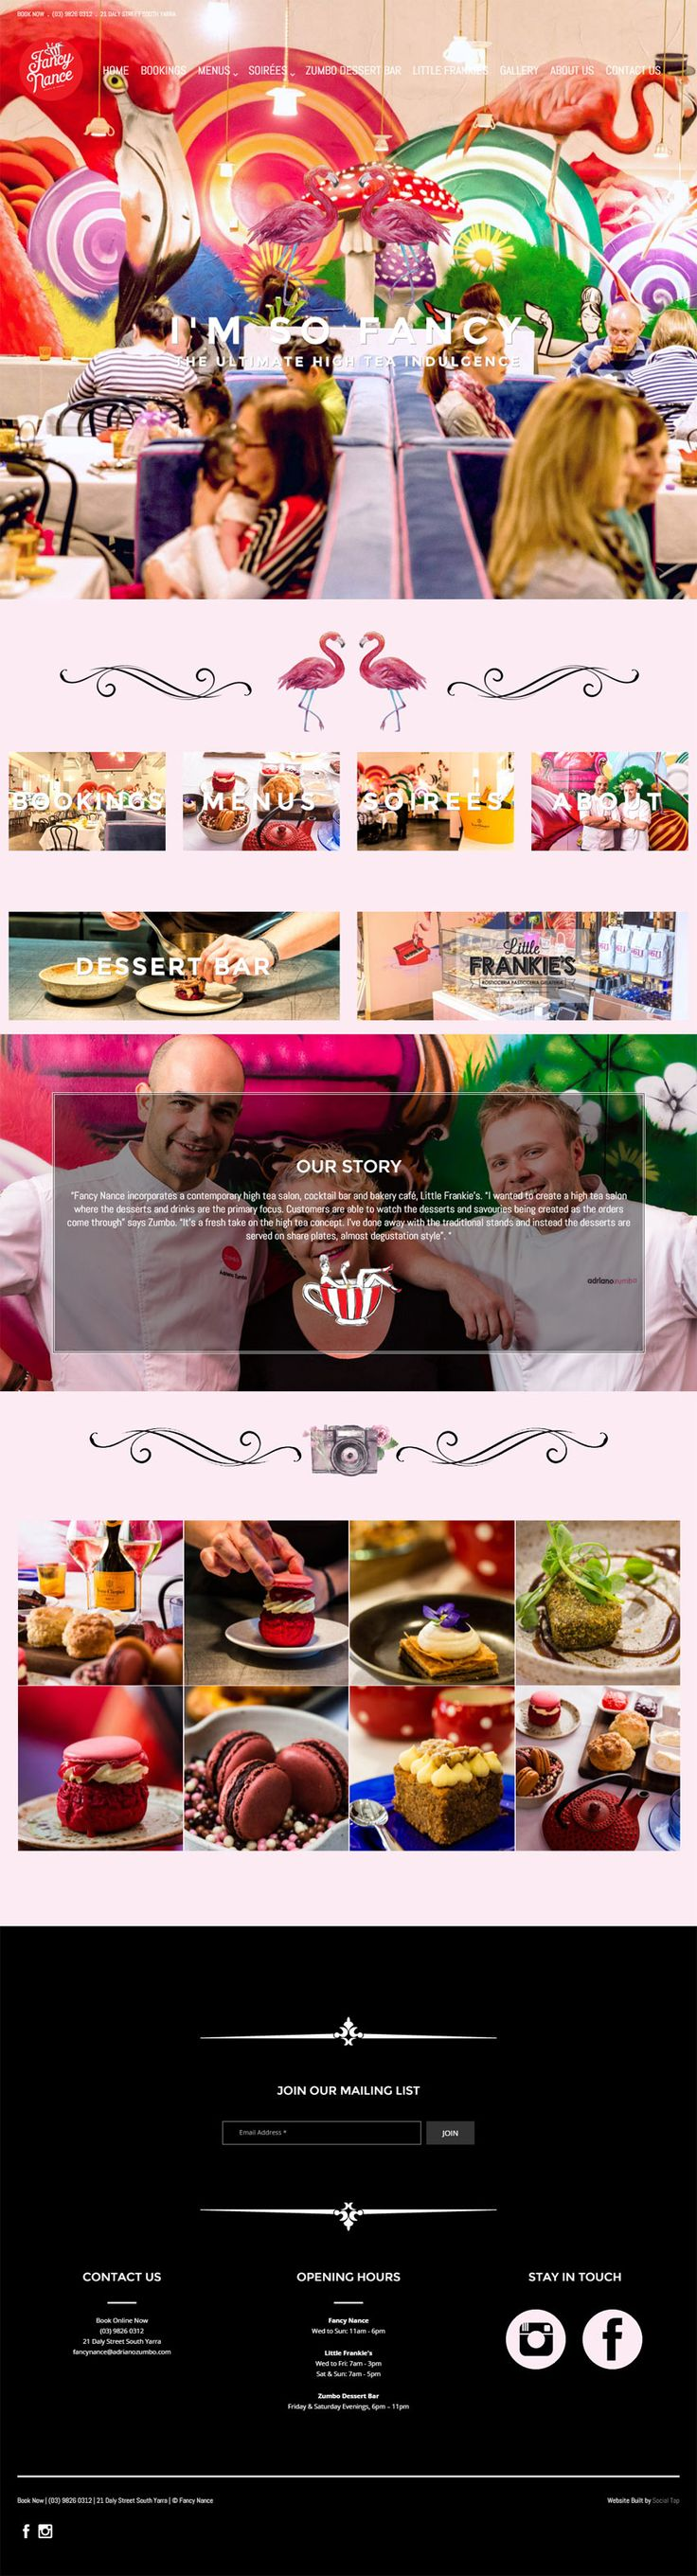 Website design for Adriano Zumbo's Fancy Nance Restaurant in Melbourne, VIC. Websites for Hospitality and Tourism, designed & built by SocialTap.com.au